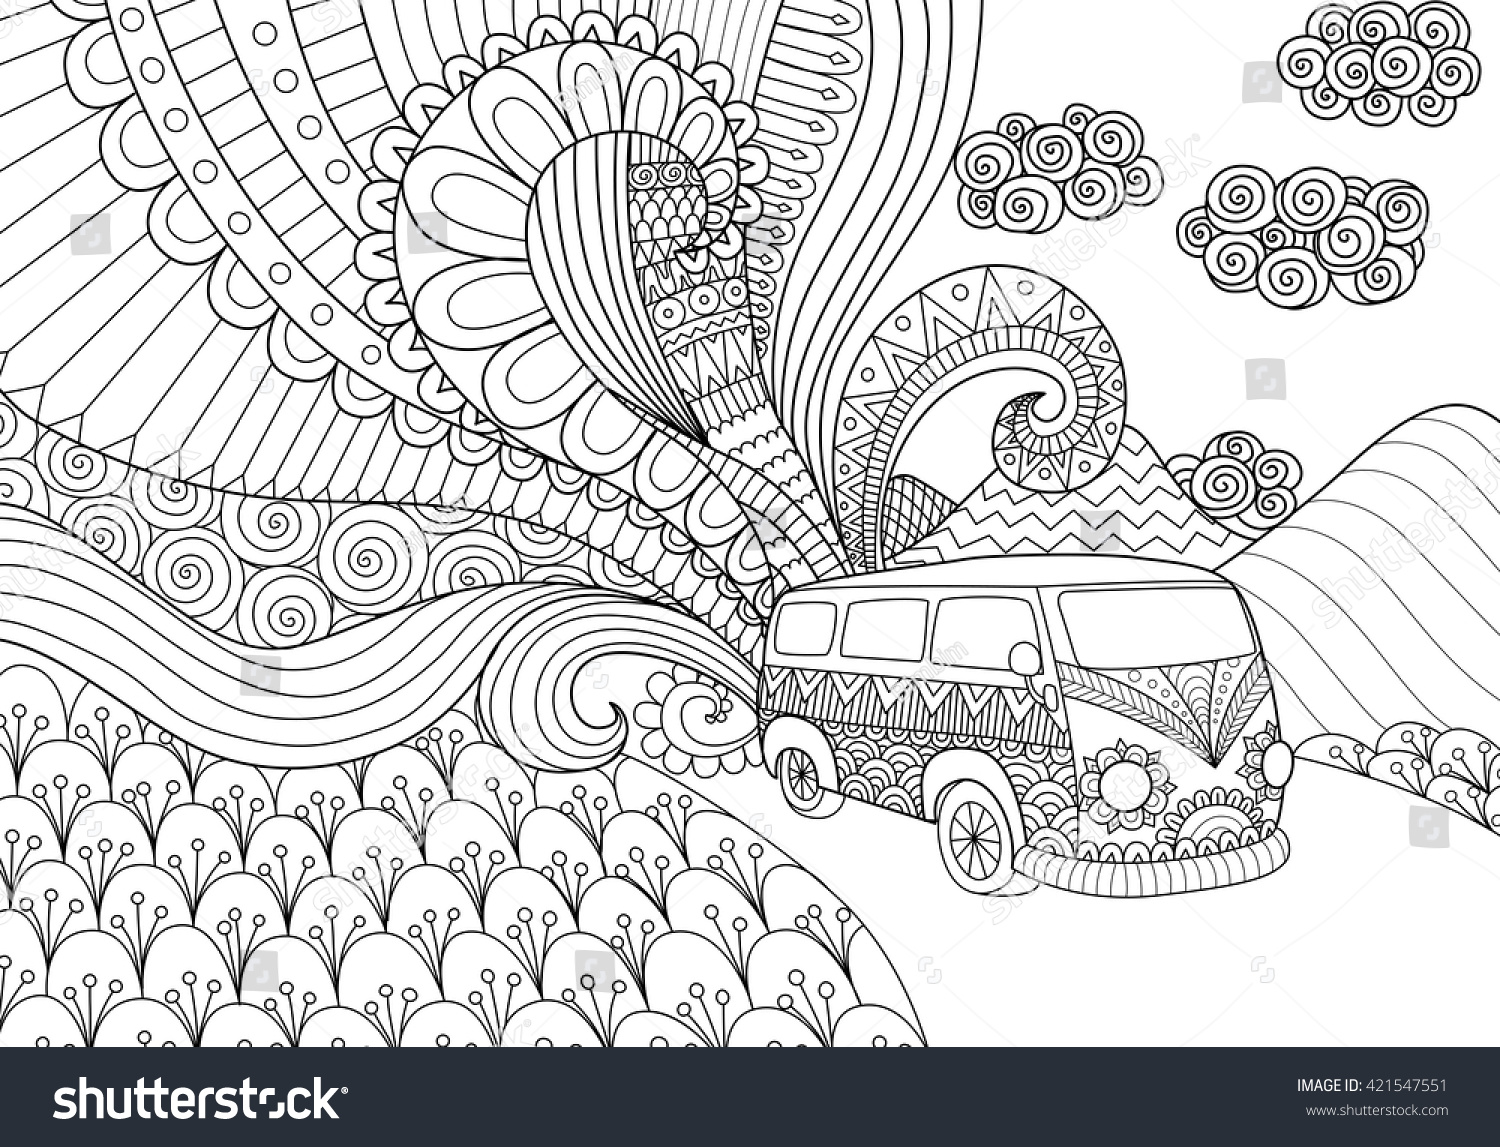 listellos line art coloring pages - photo#23